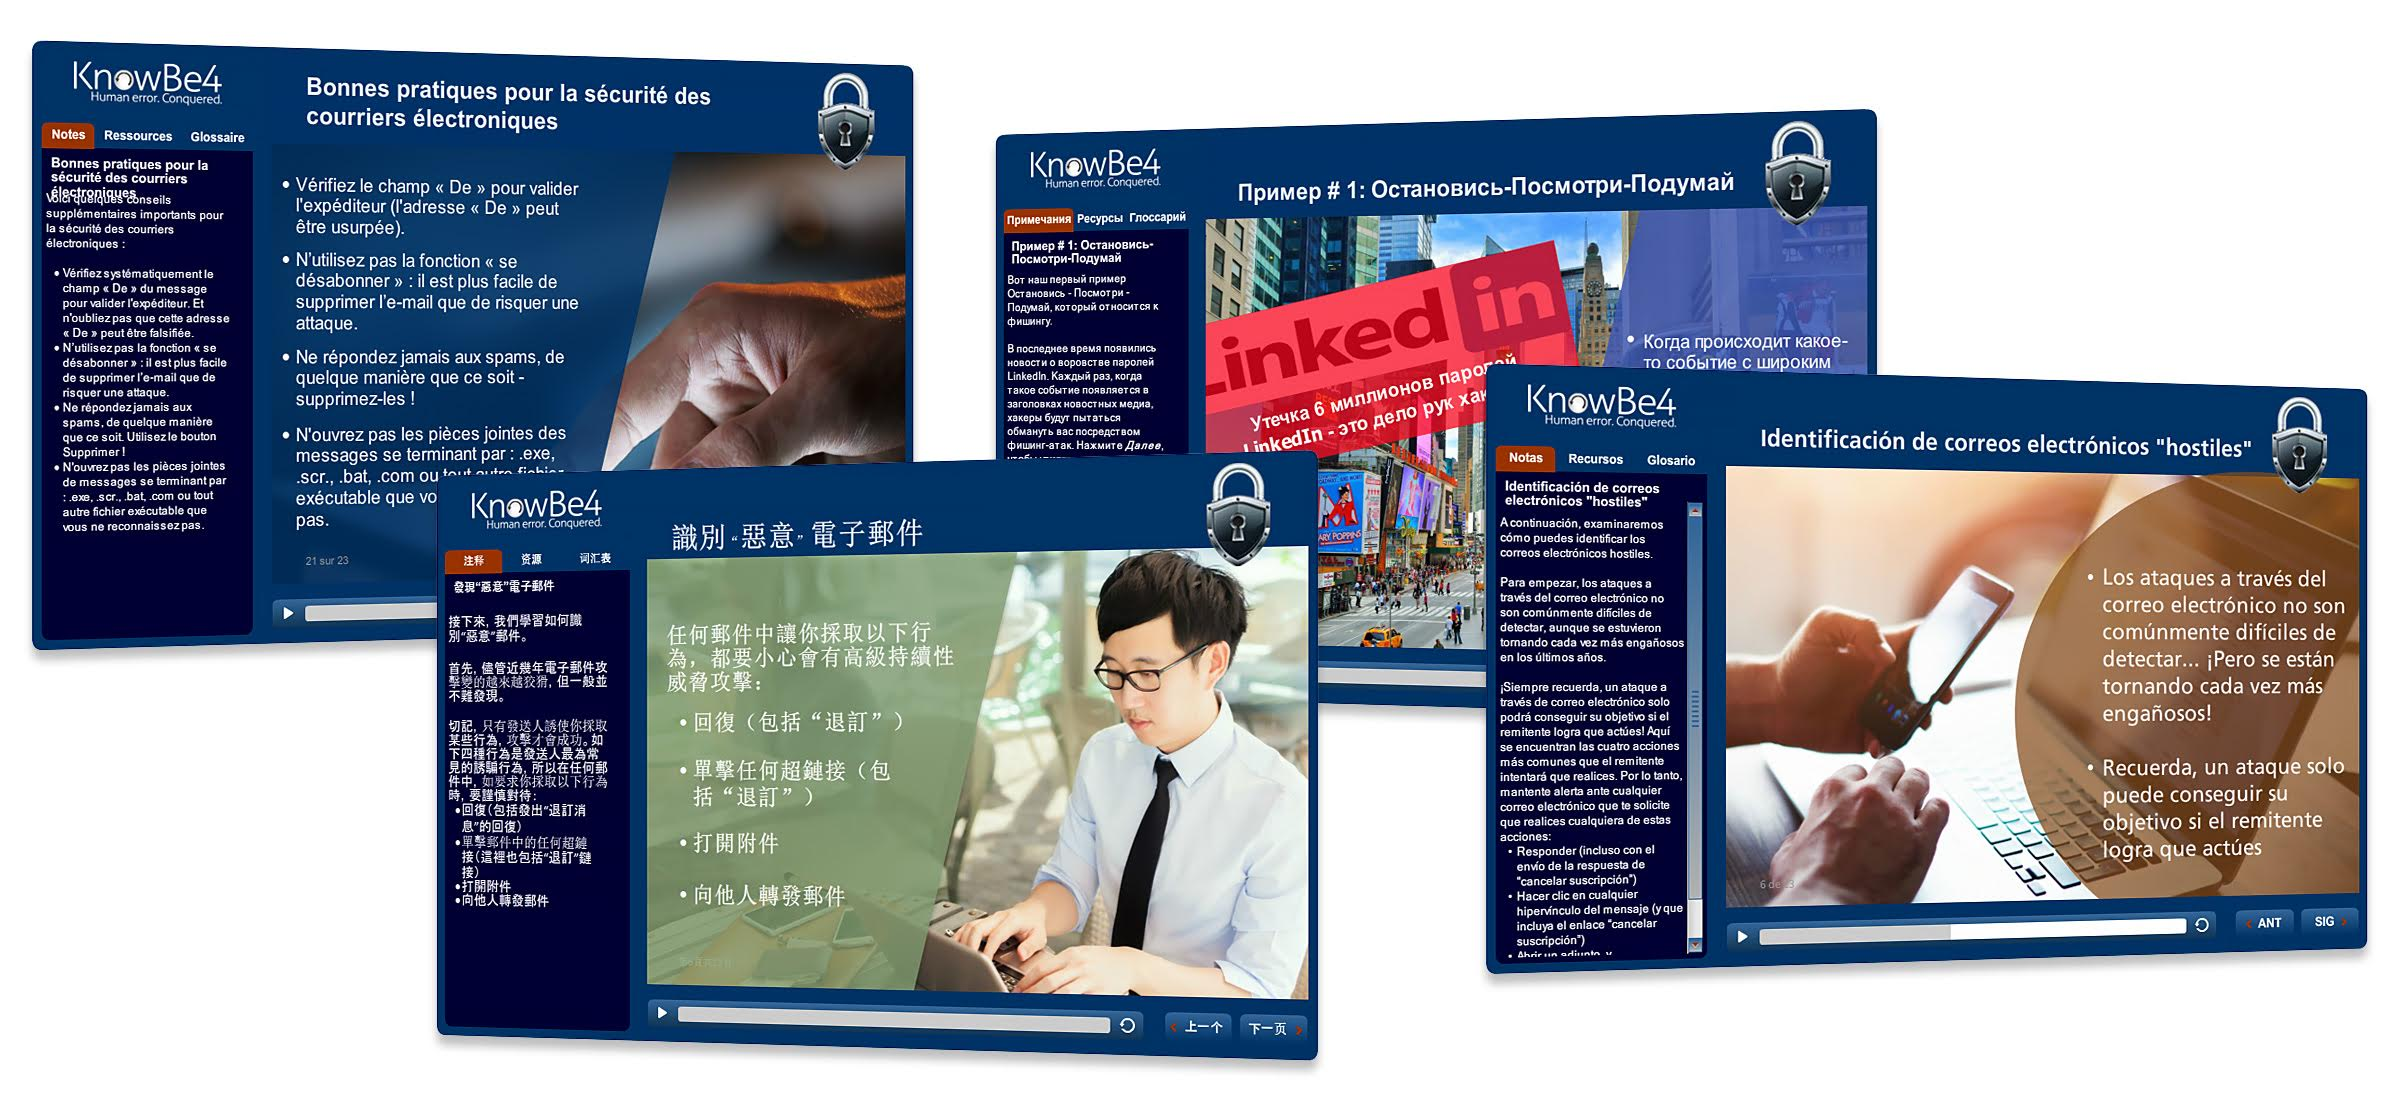 KnowBe4 Makes Security Awareness Training Available in 26 Languages